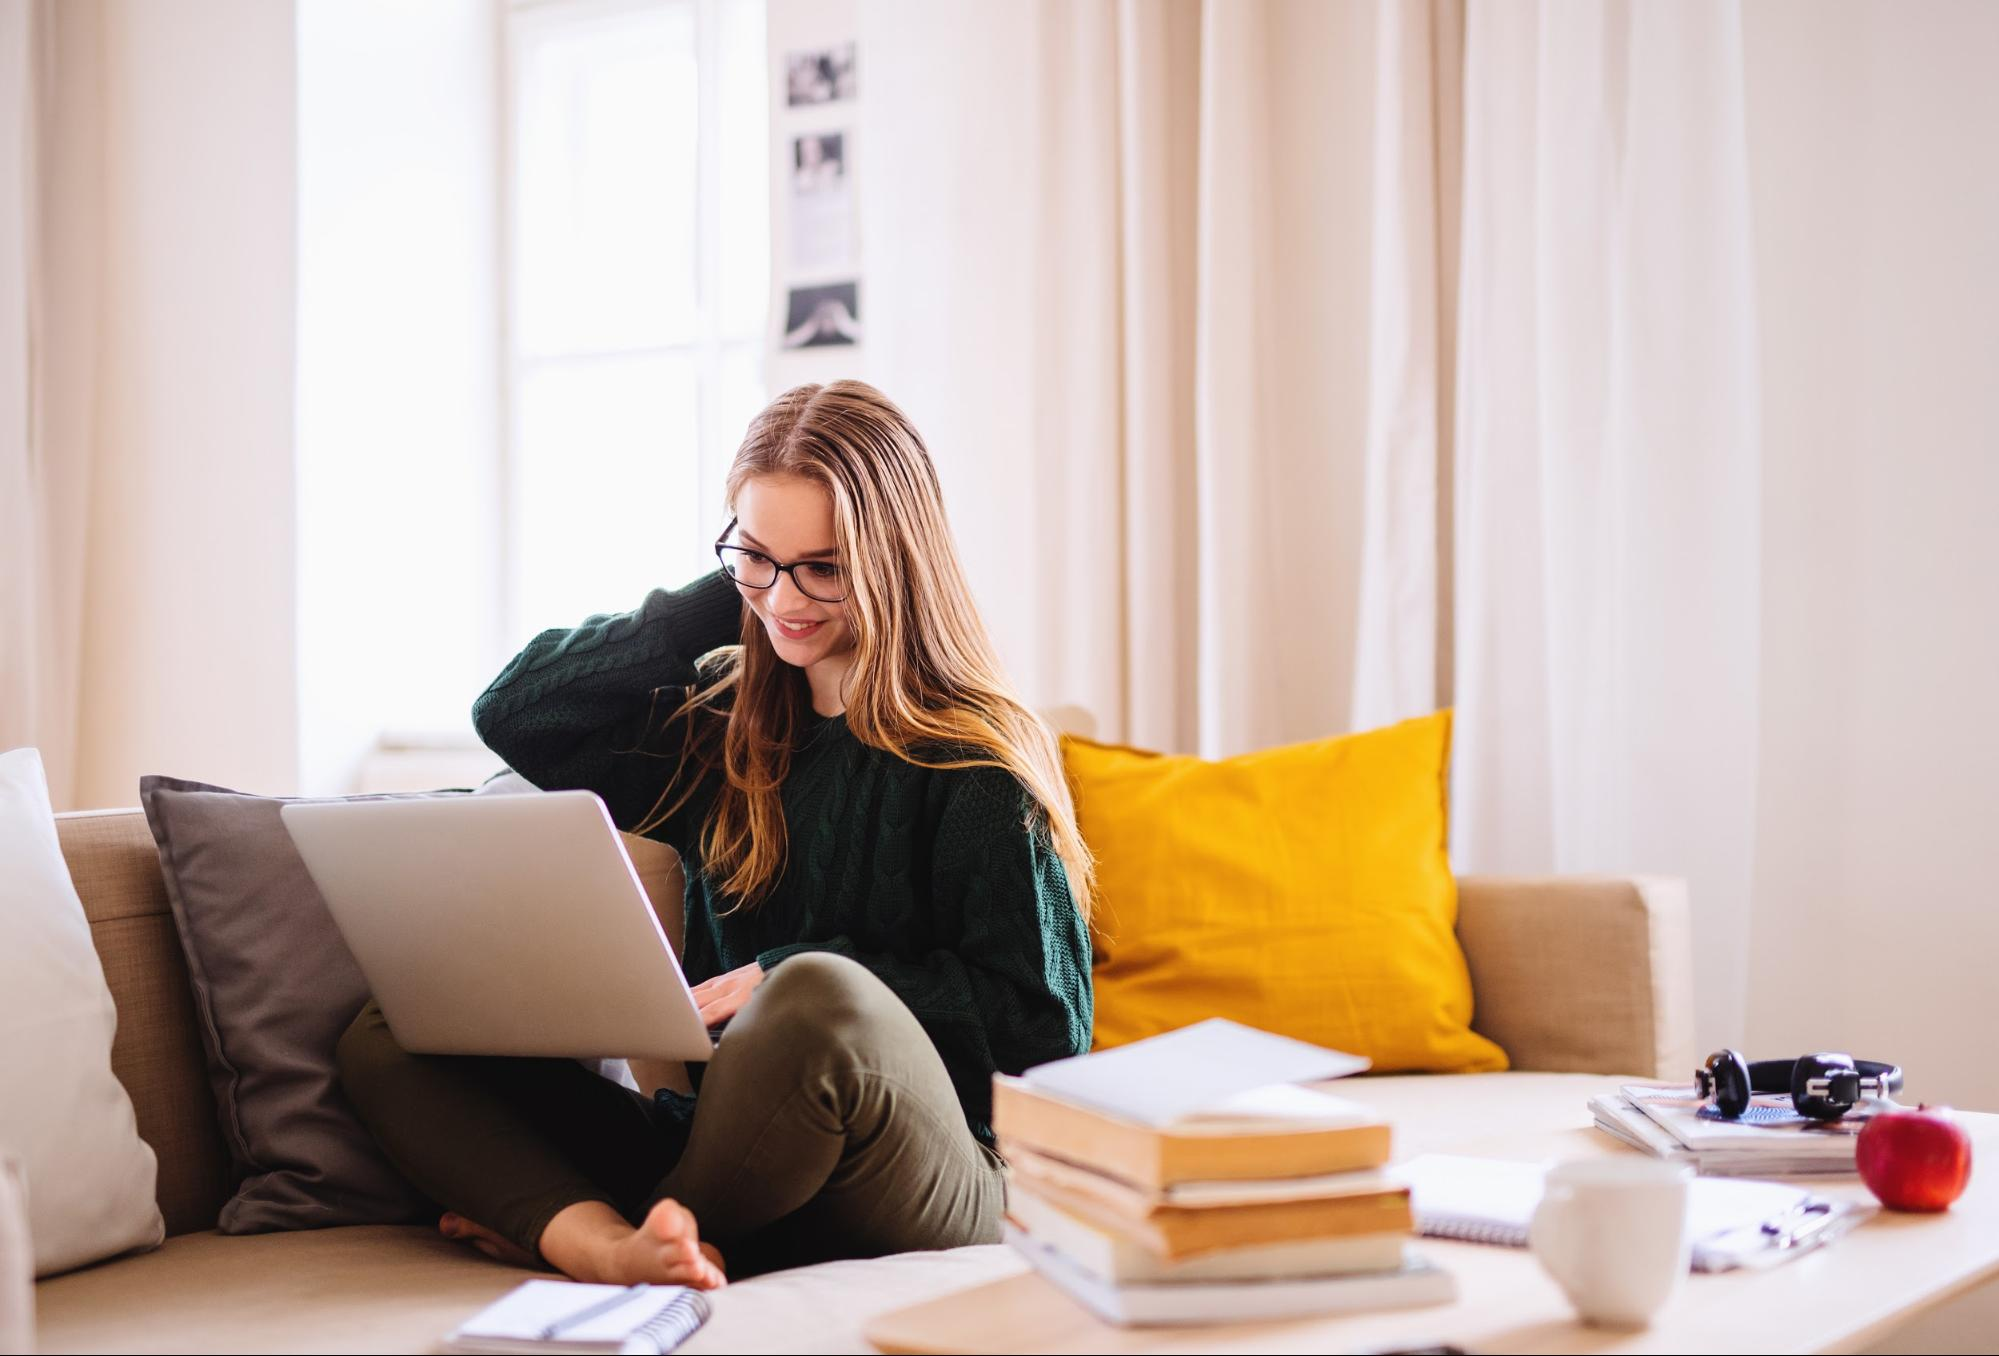 Associate's degree: A young female student using a laptop while sitting on a sofa